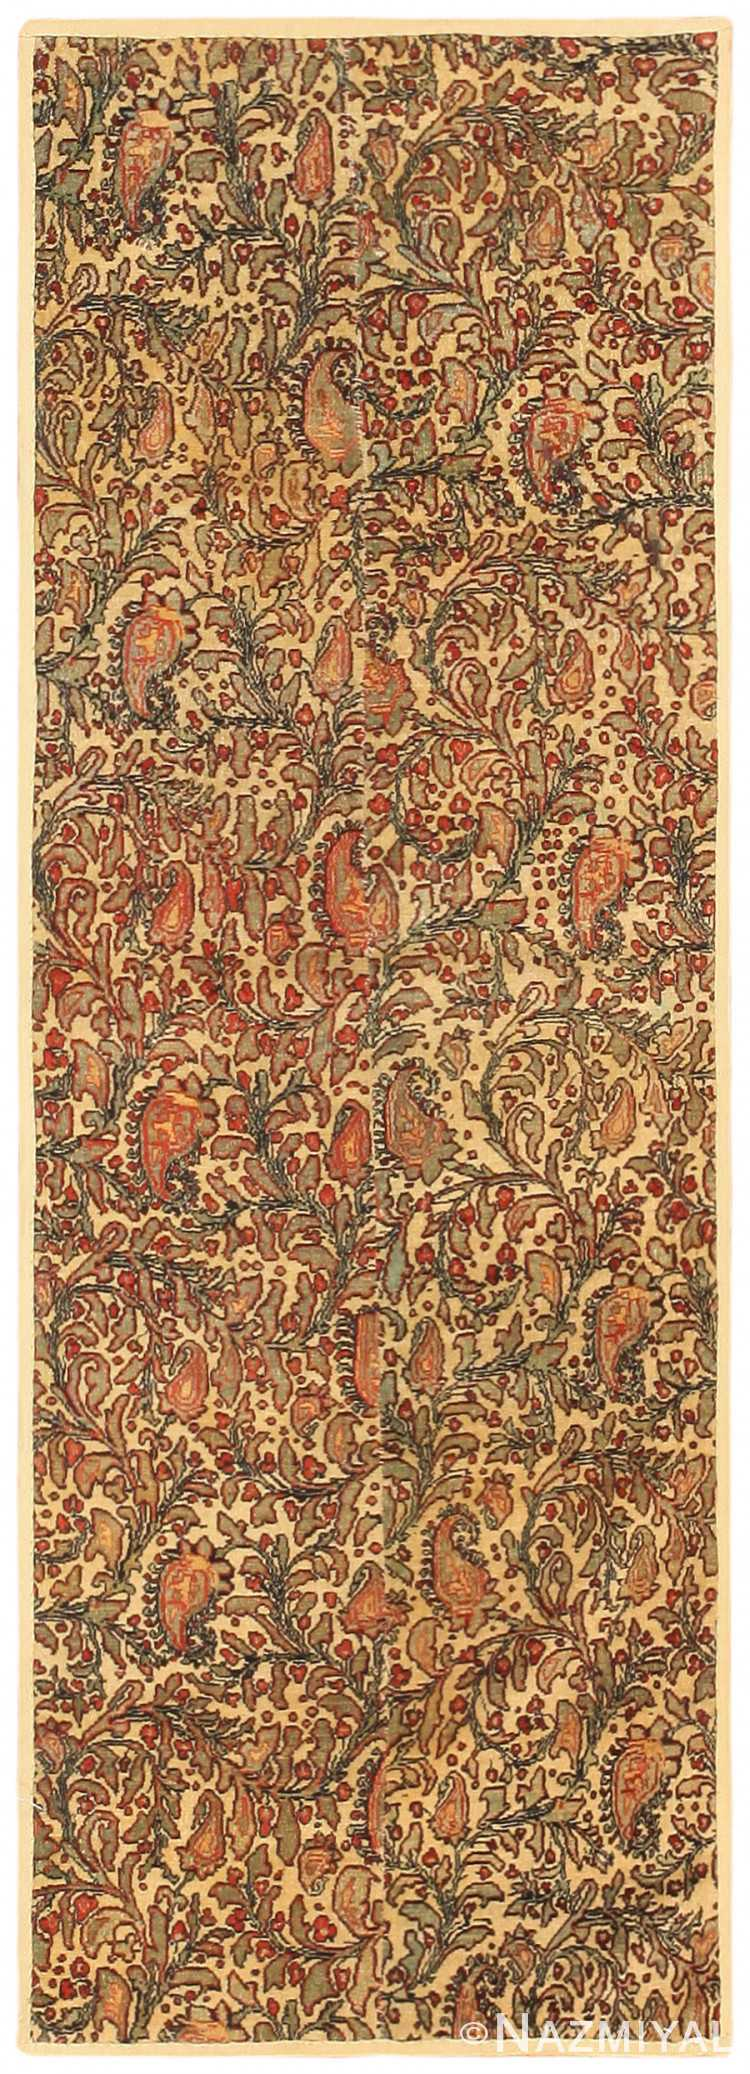 Antique Persian Senneh Rug 47230 Detail/Large View